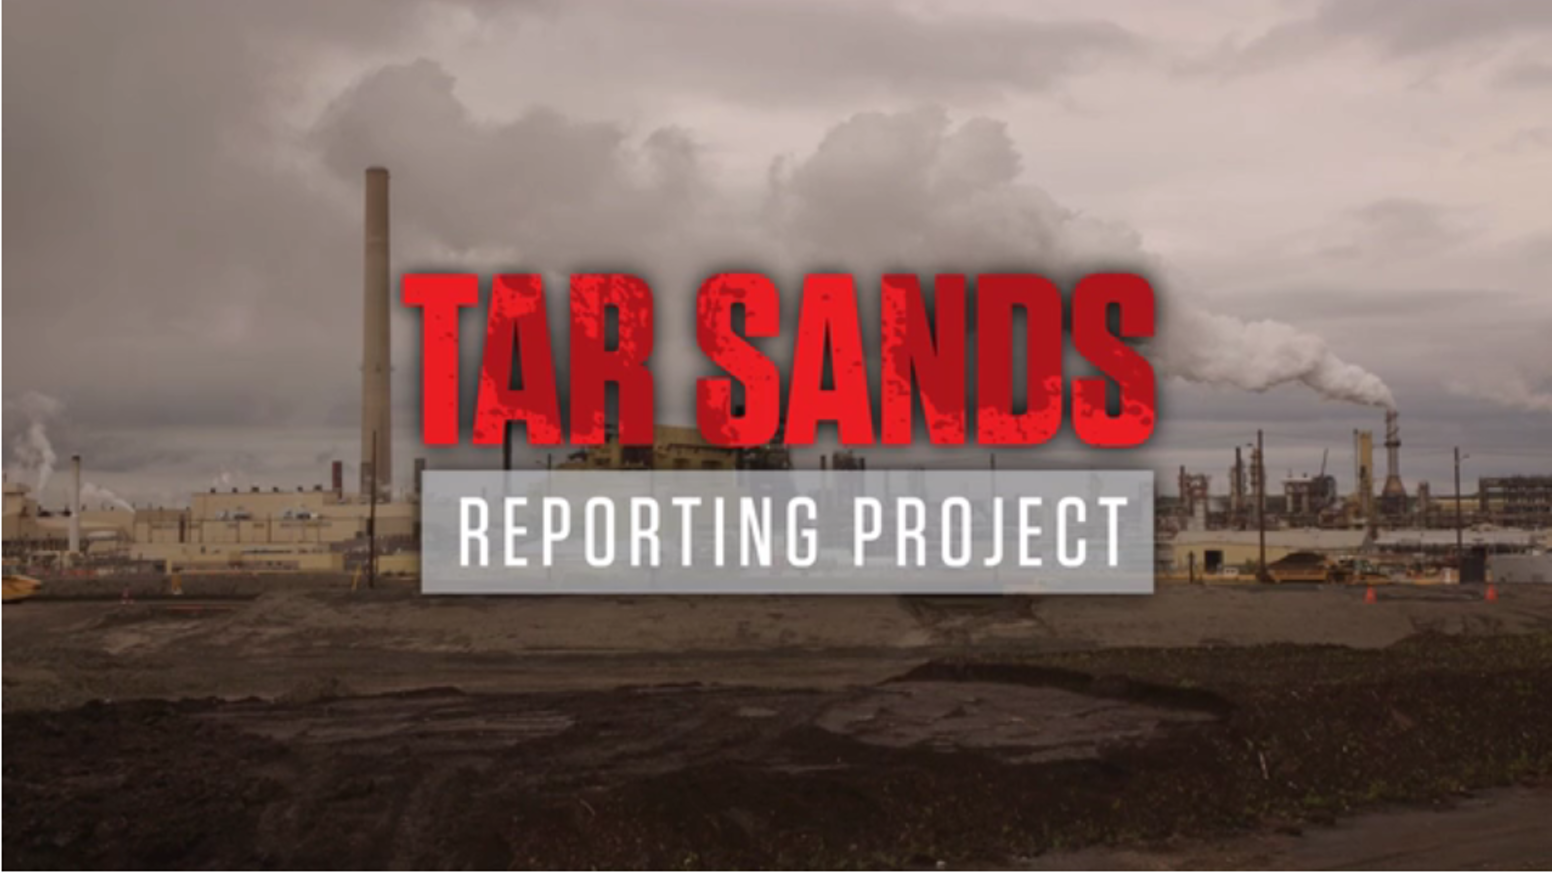 The tar sands. A drama of epic proportions that  we'll tell story by story over one year.